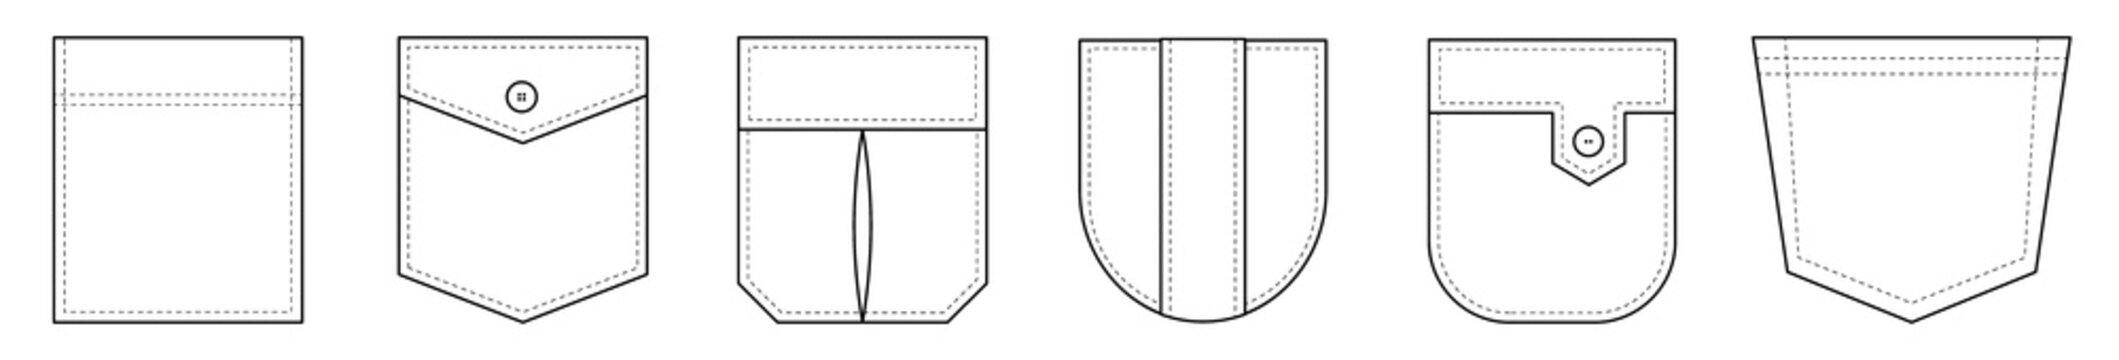 Patch pocket. Set of uniform patch pockets shapes for clothes, dress, shirt, casual denim style. Isolated icons.